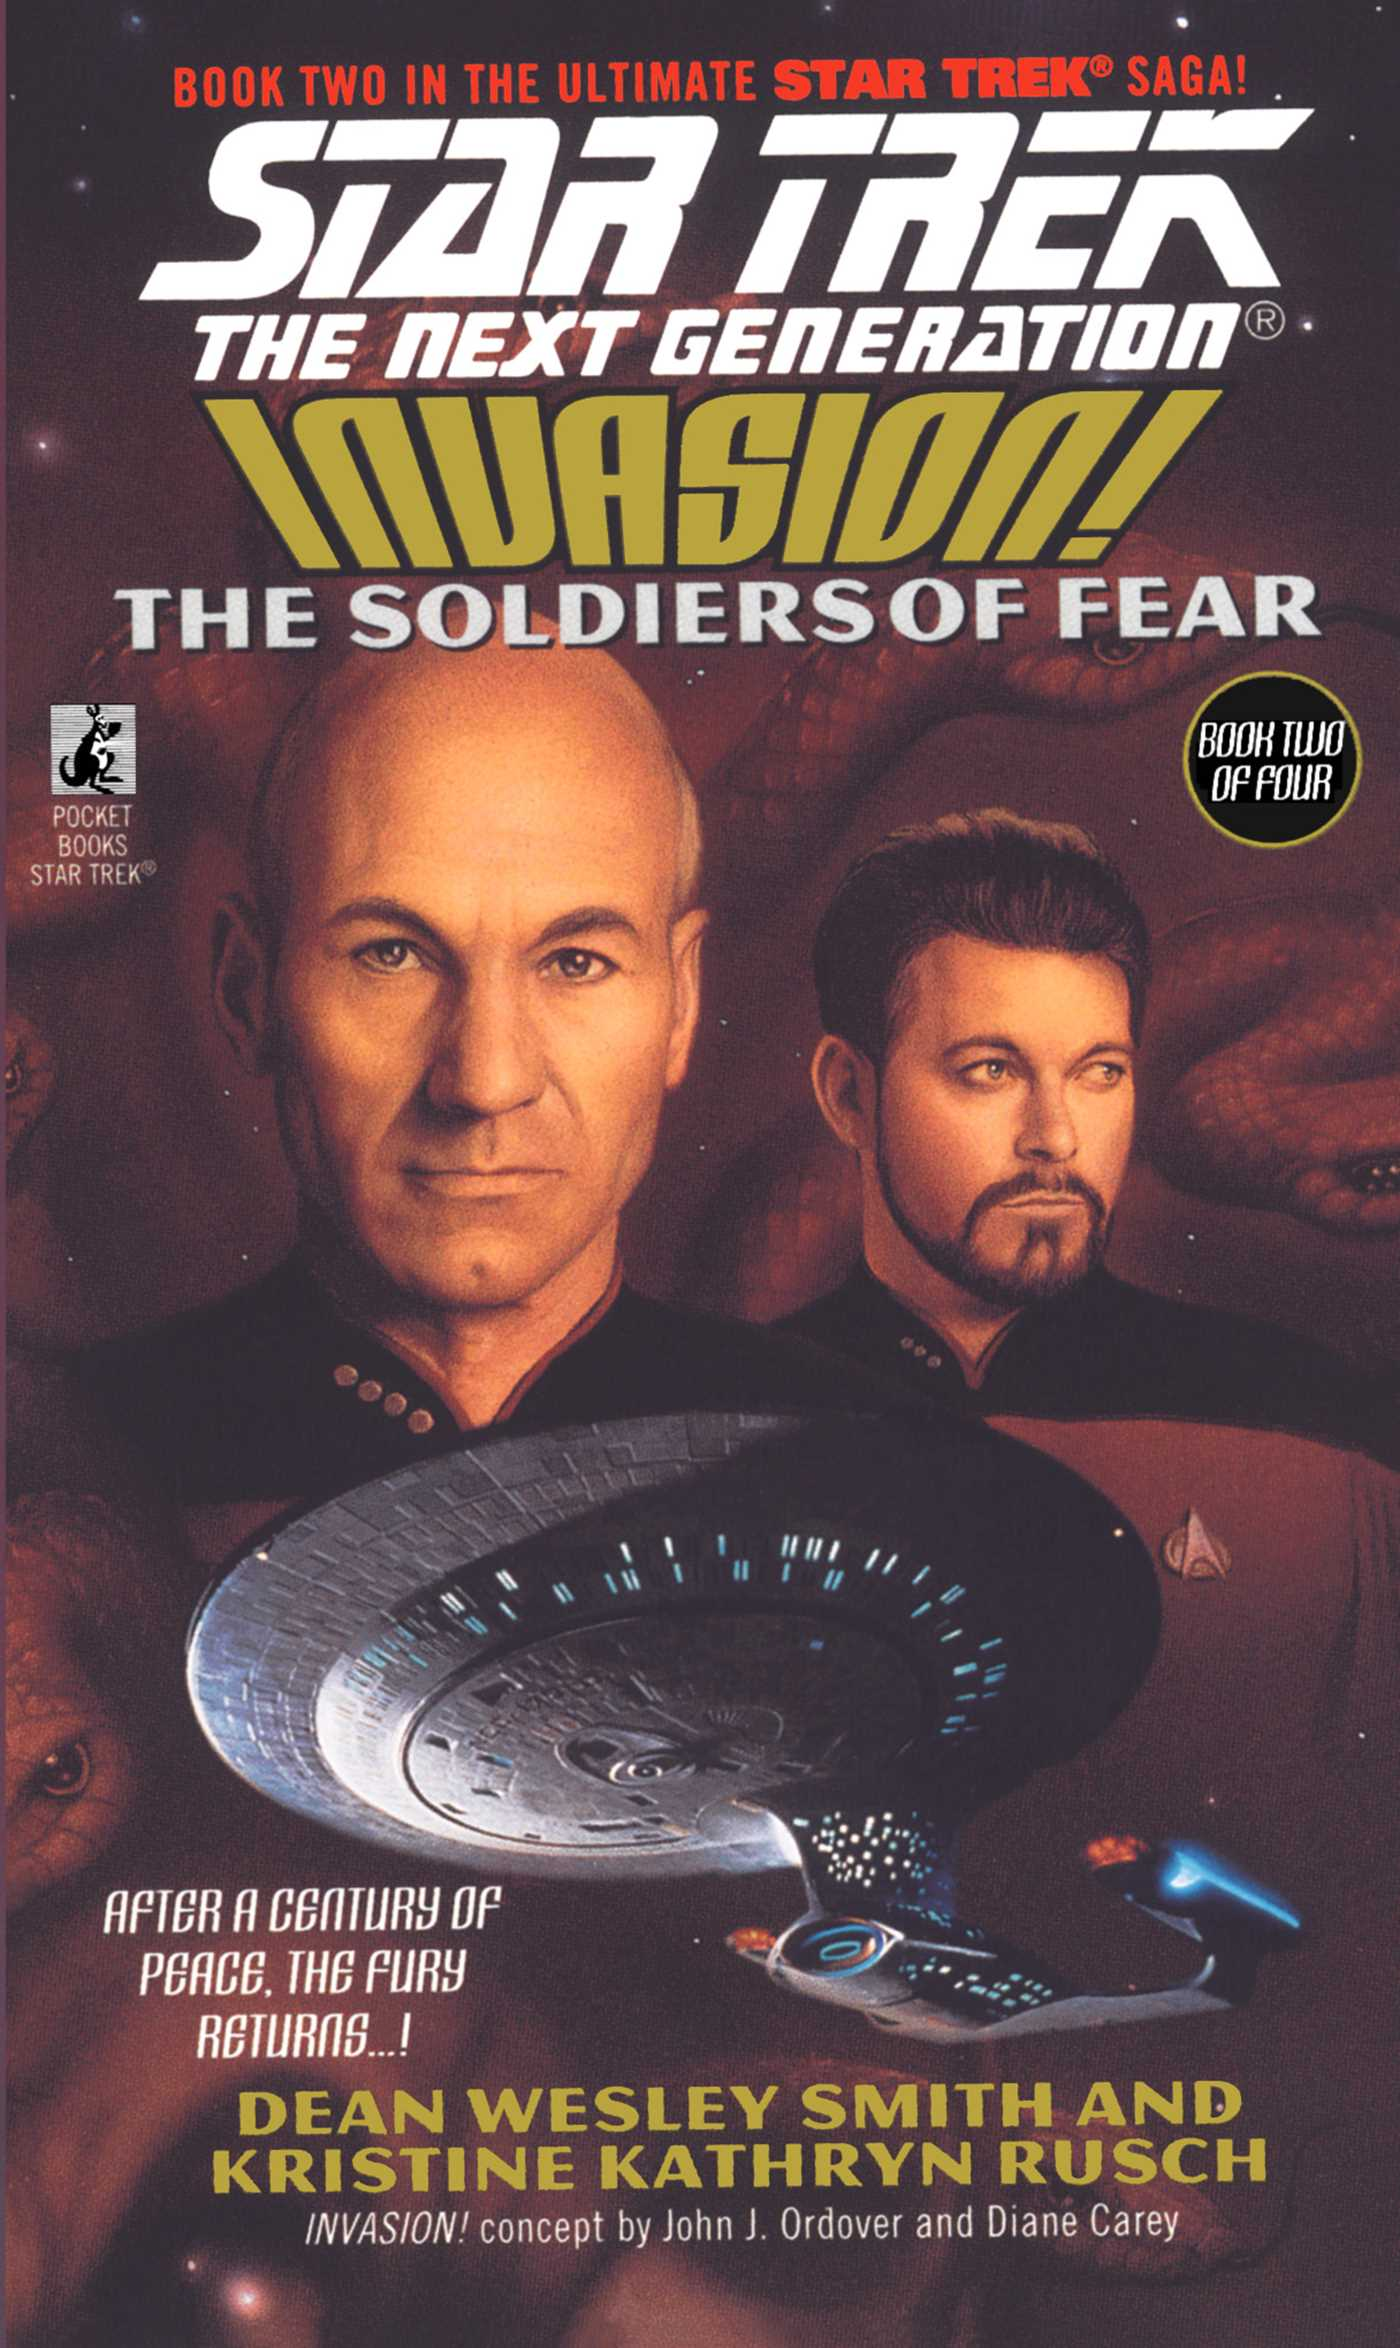 The soldiers of fear 9780671040963 hr